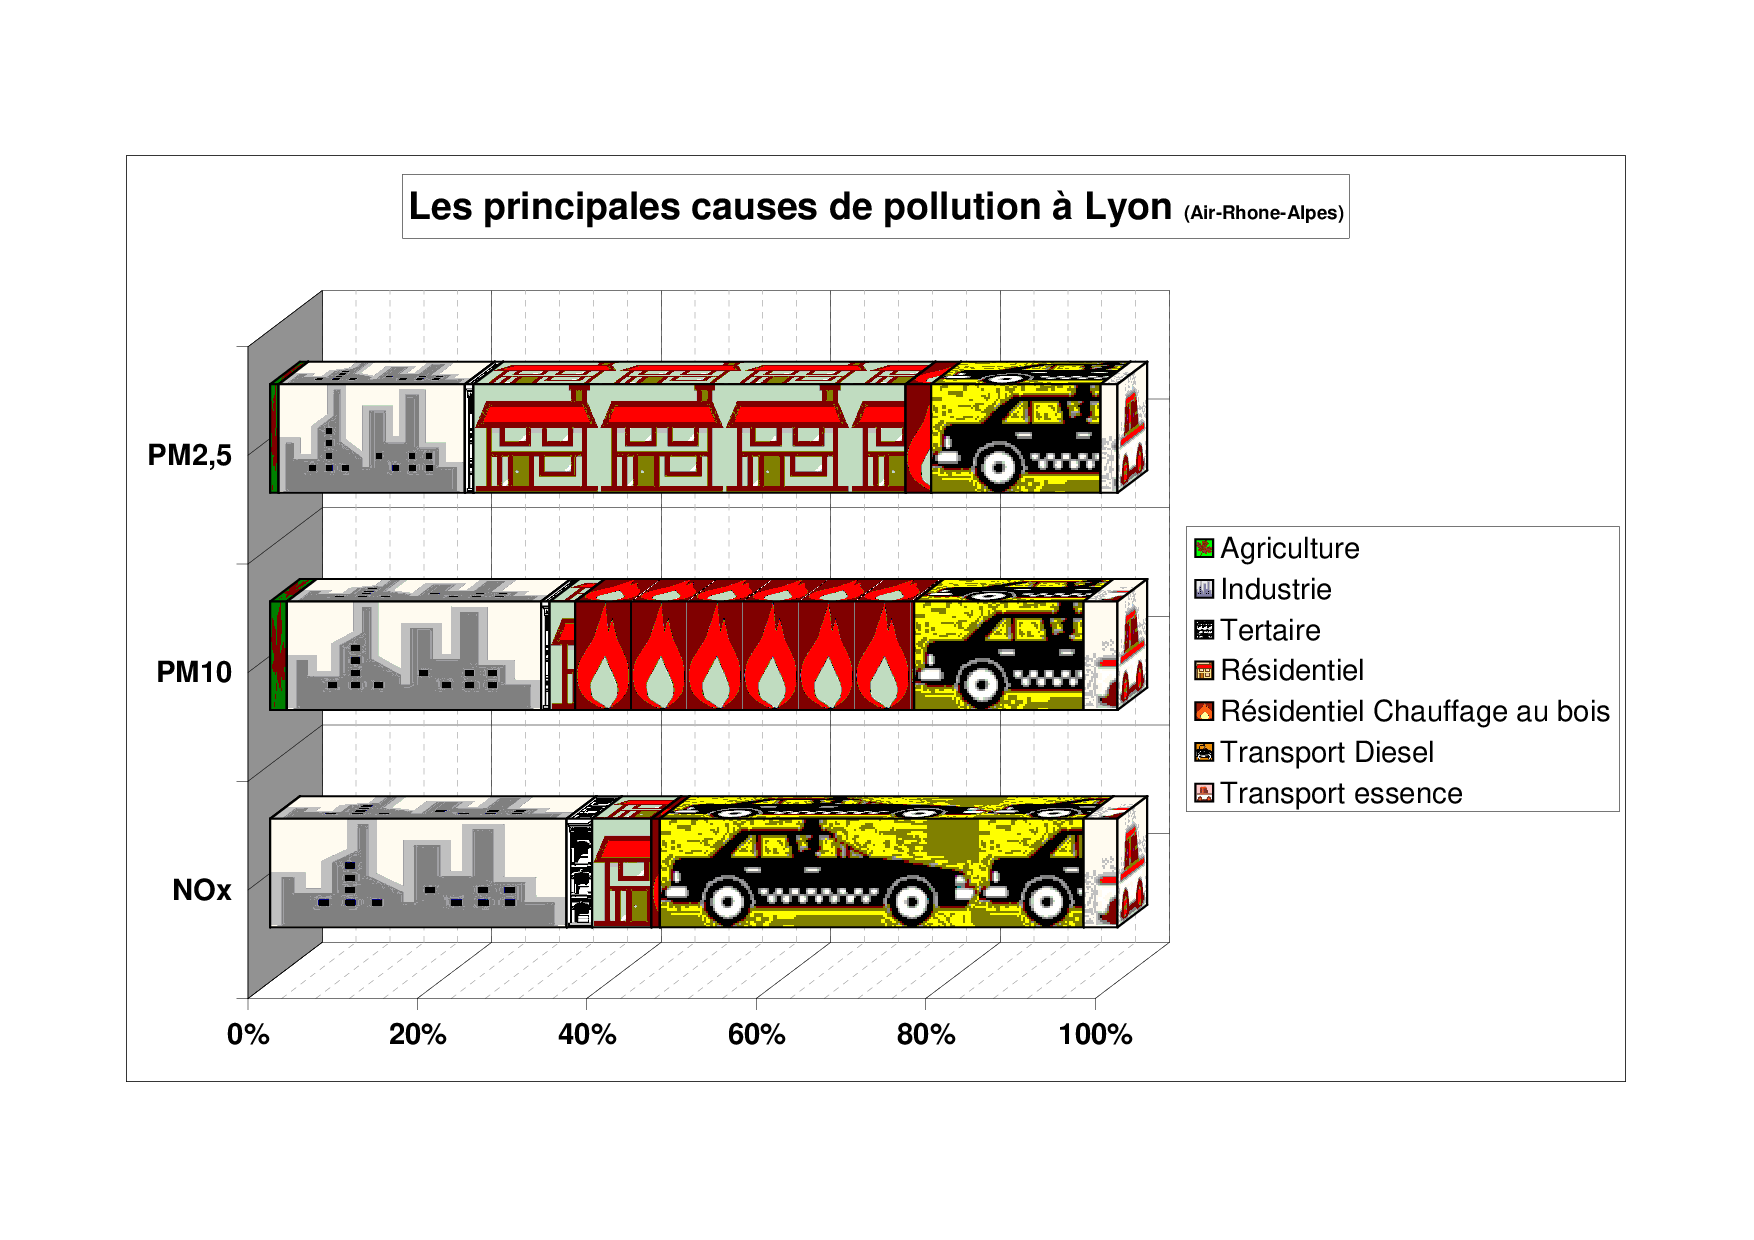 Les causes de pollution à Lyon